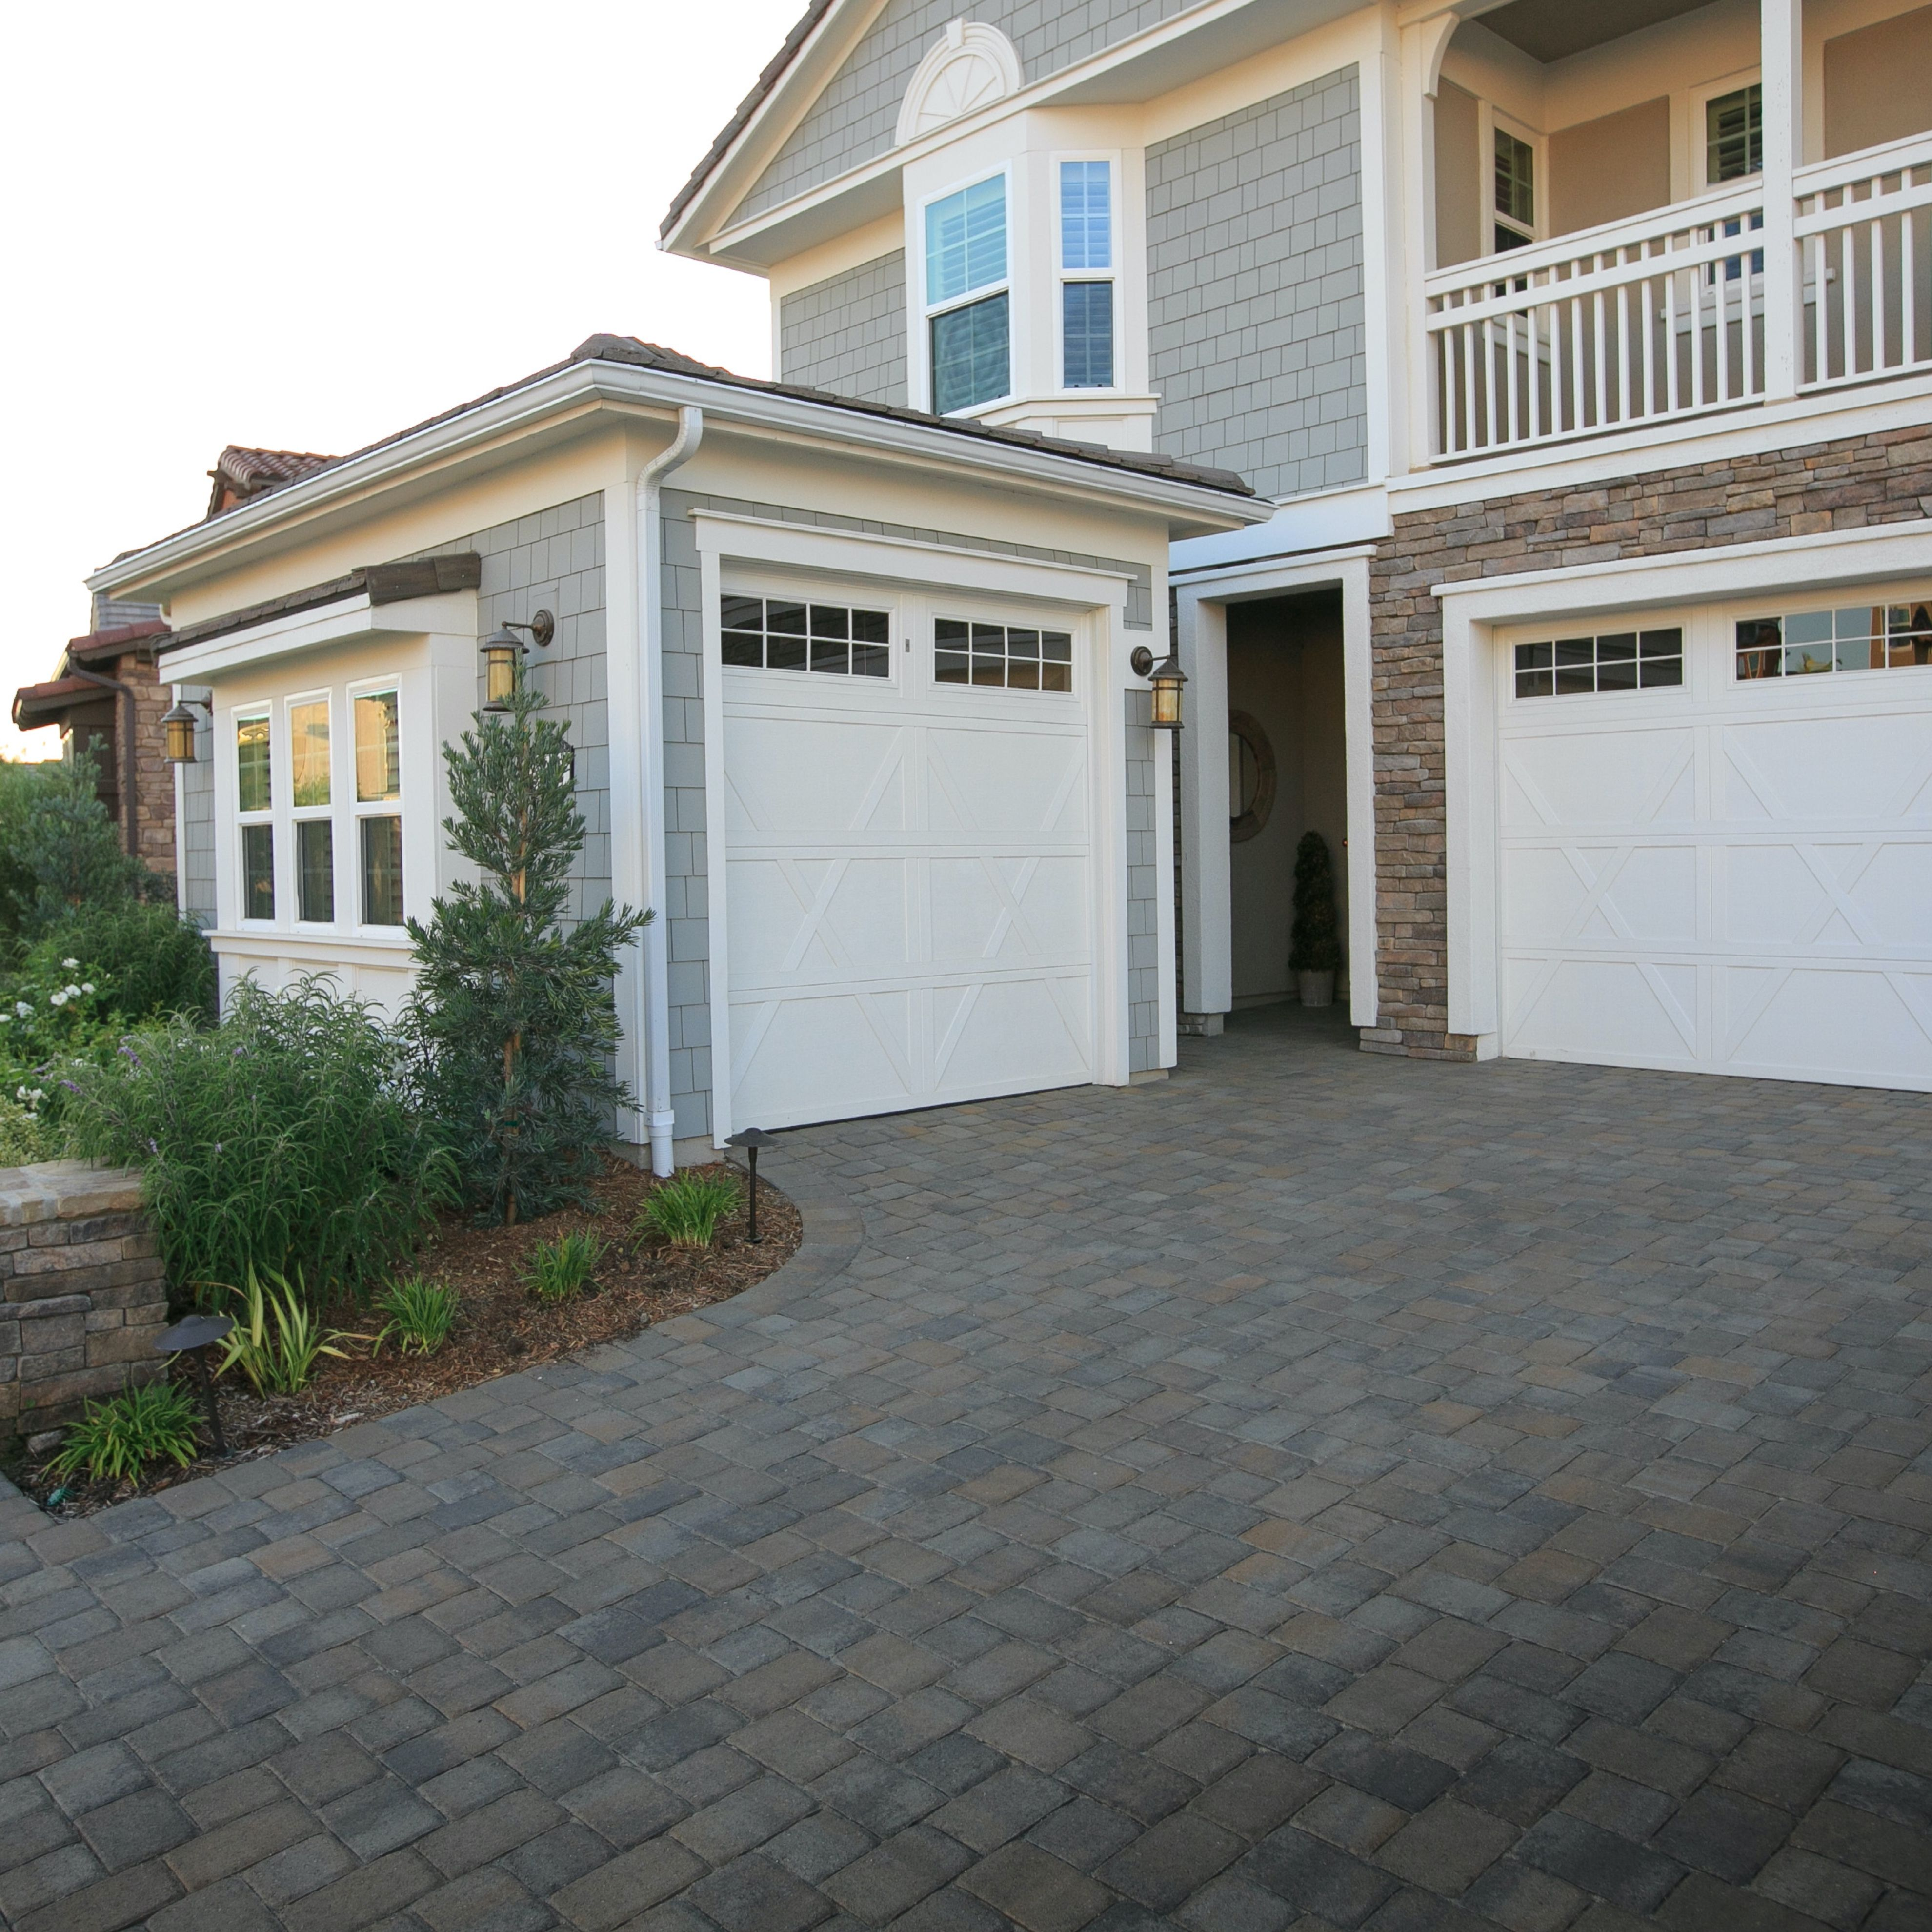 San Diego Pavers Goal Is To Provide Our Customers With 100